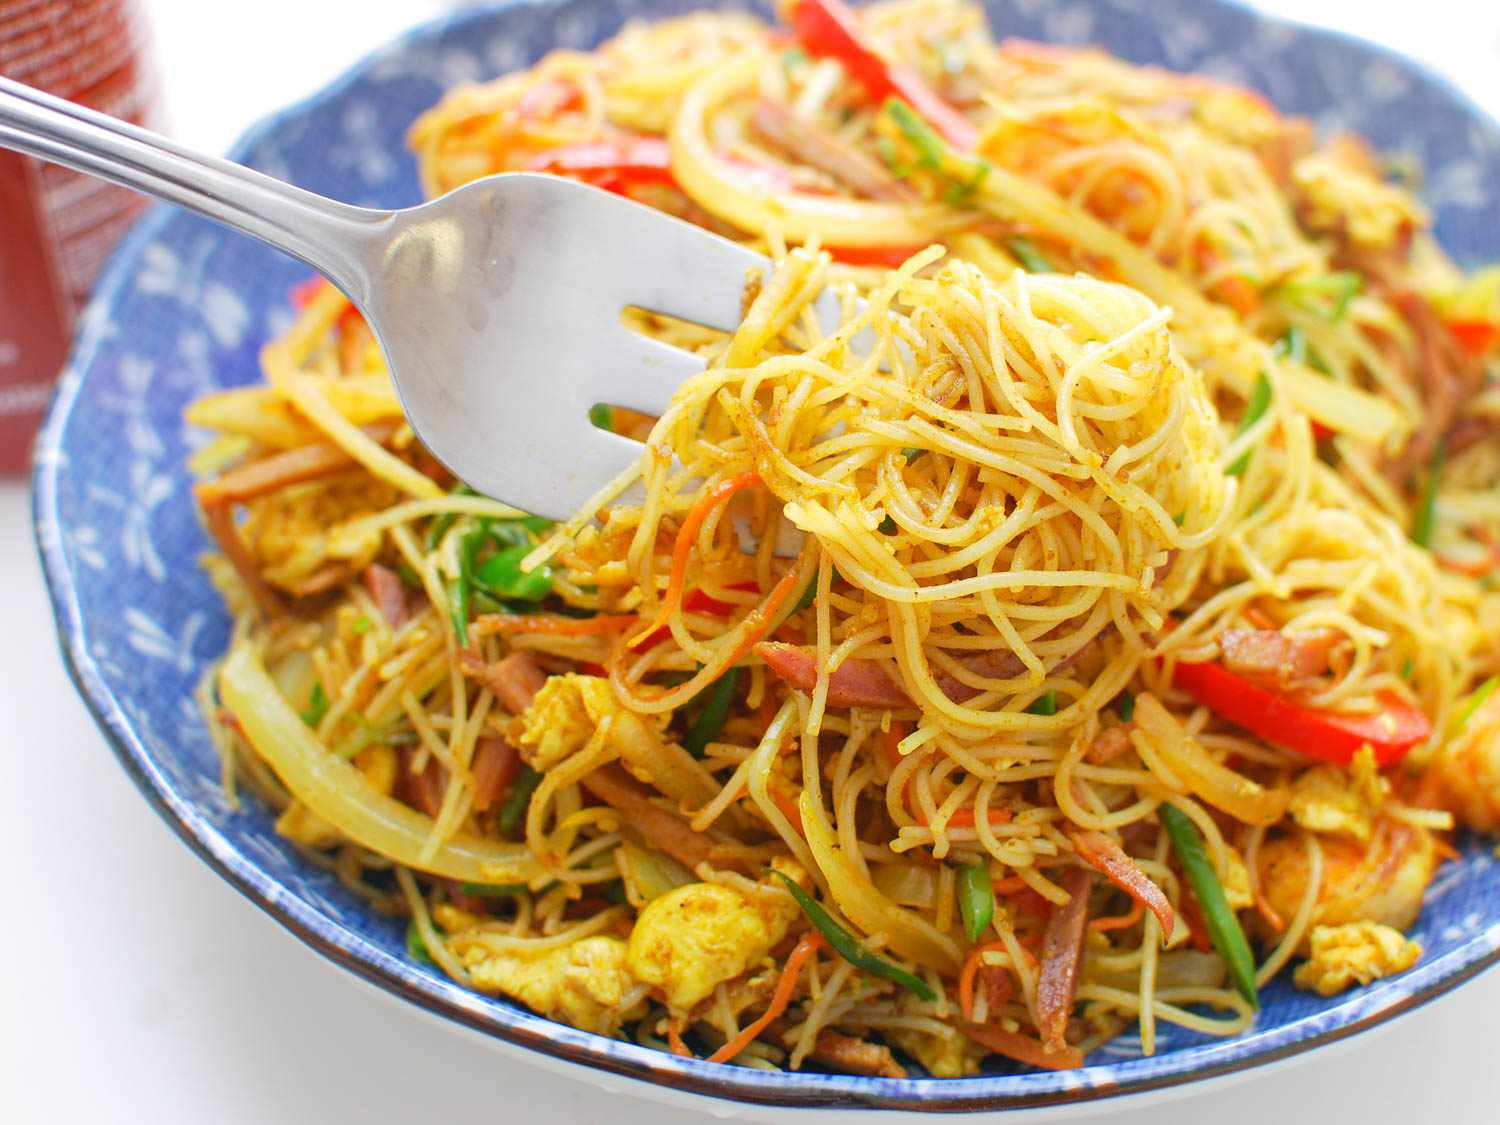 A fork twirling Singapore rice noodles from a bowl.